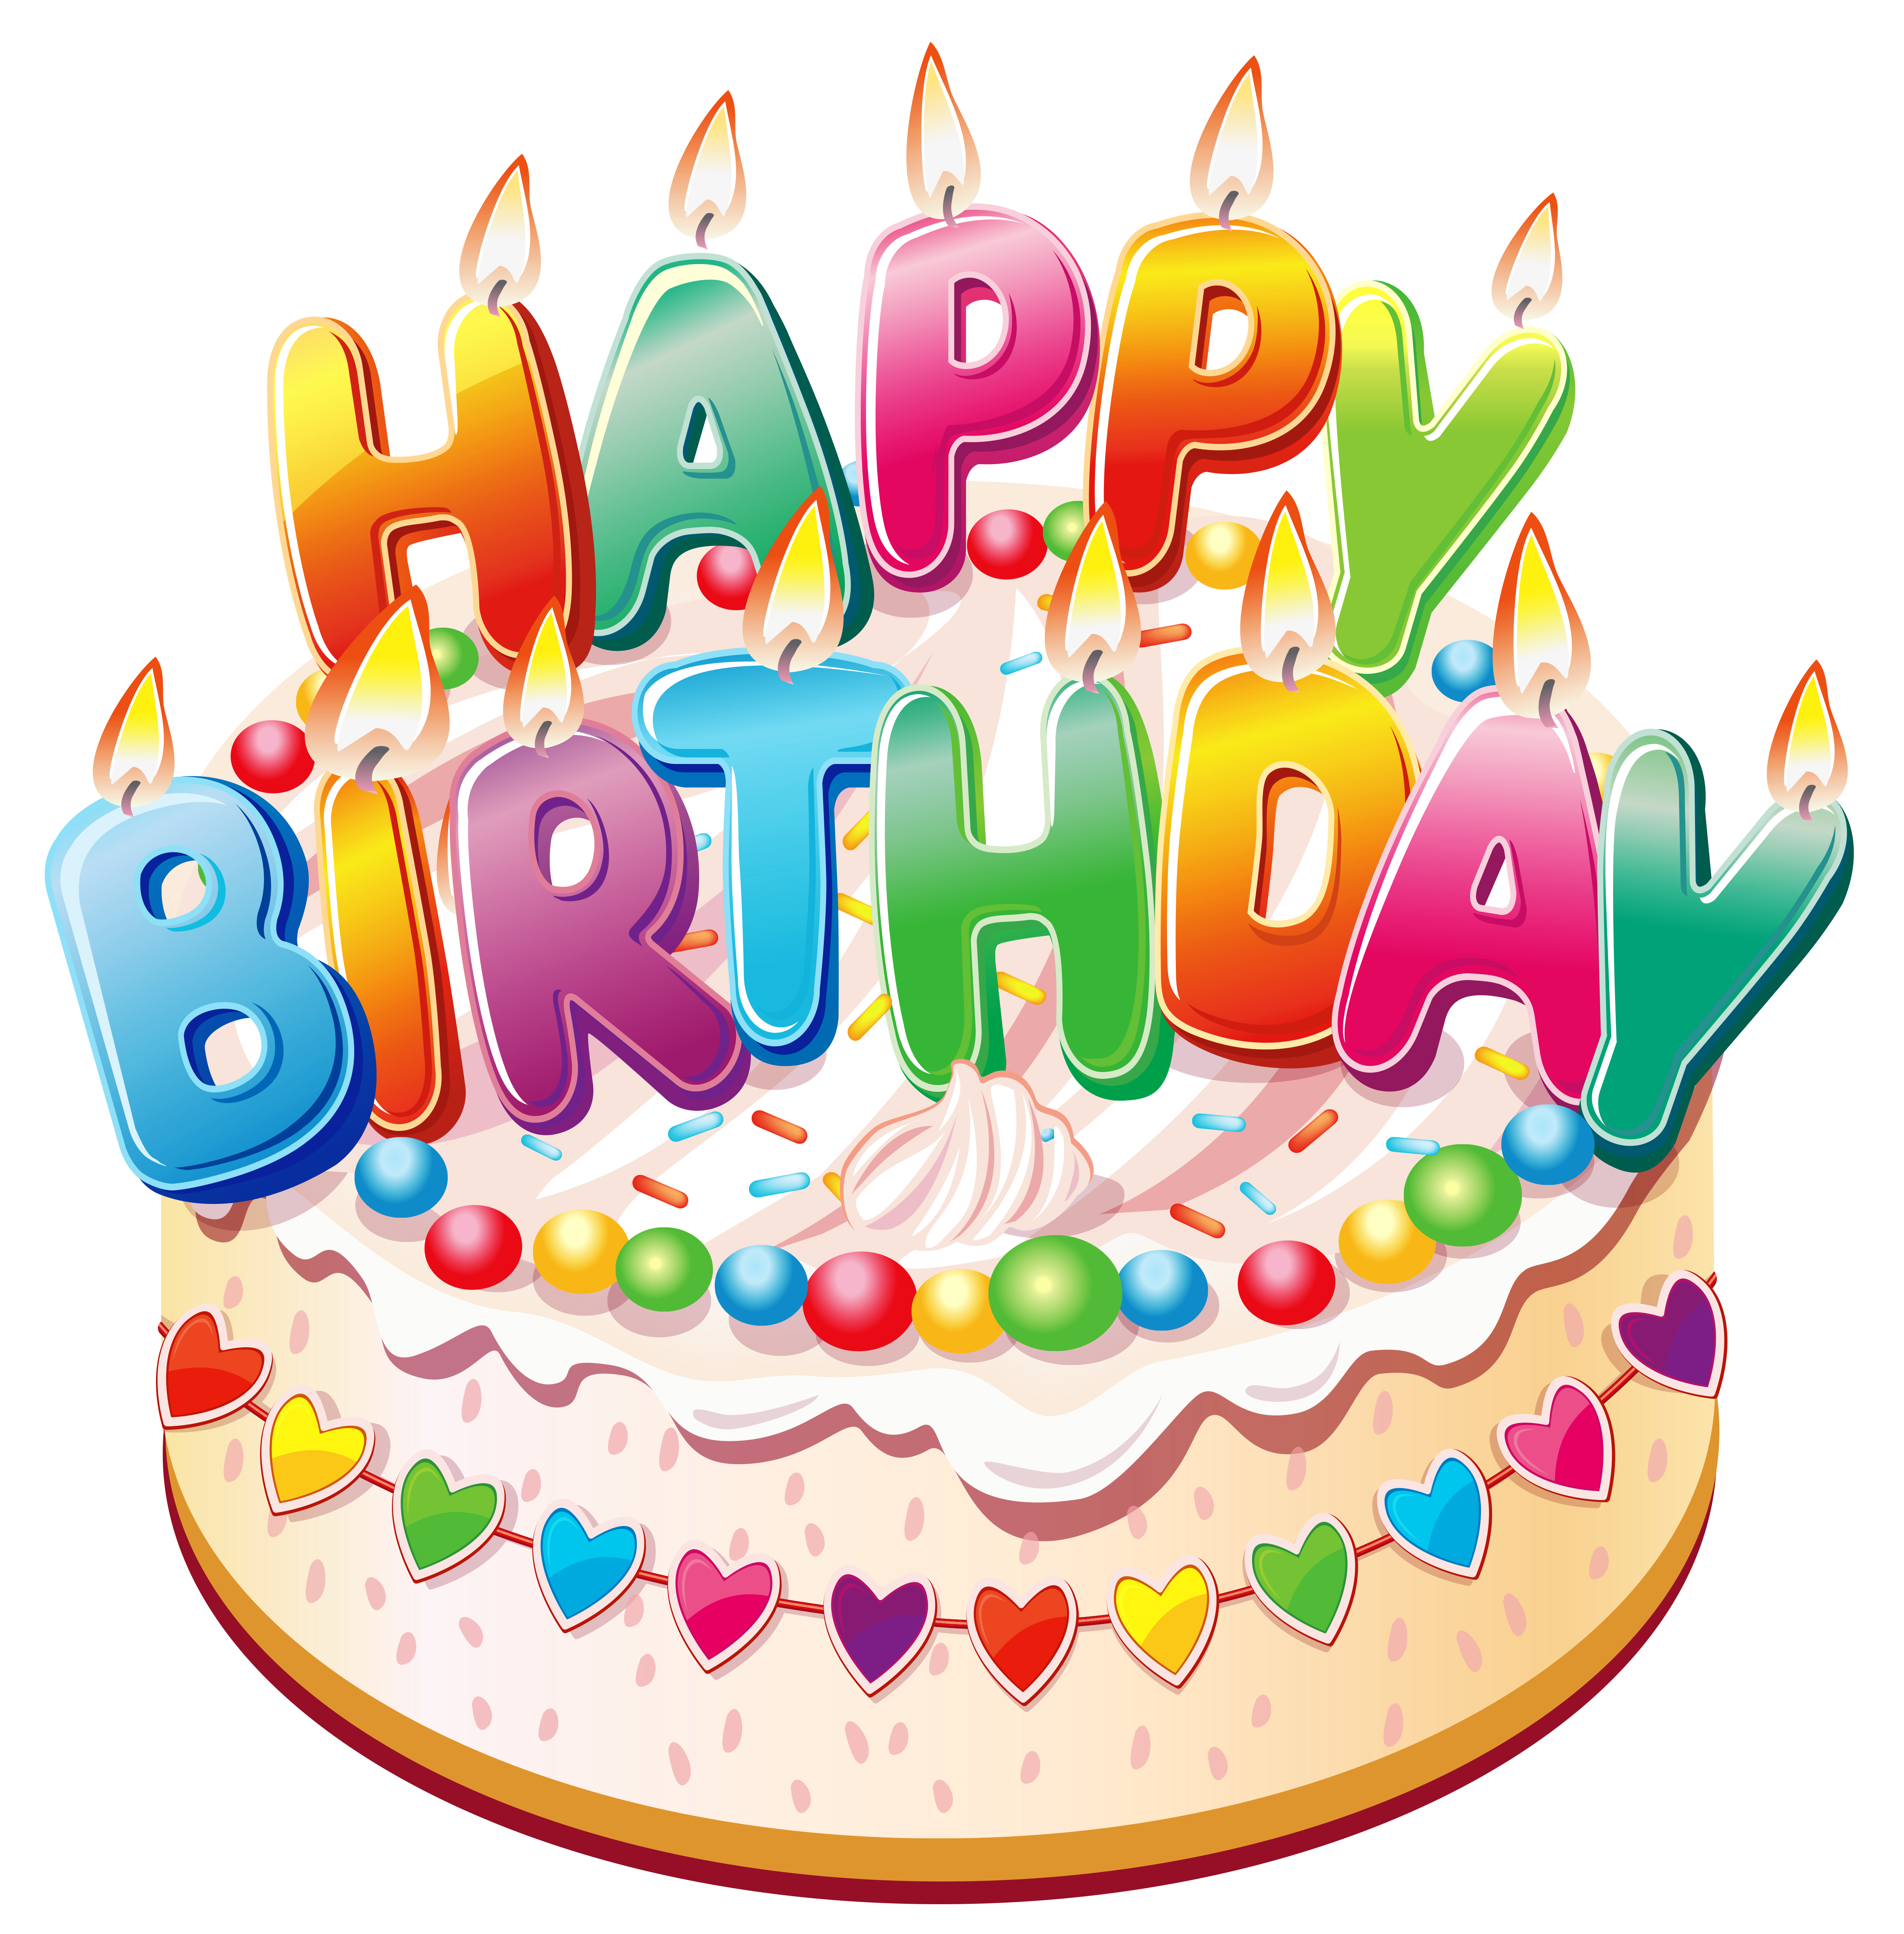 Clipart Pictures Of Birthday .-Clipart pictures of birthday .-12